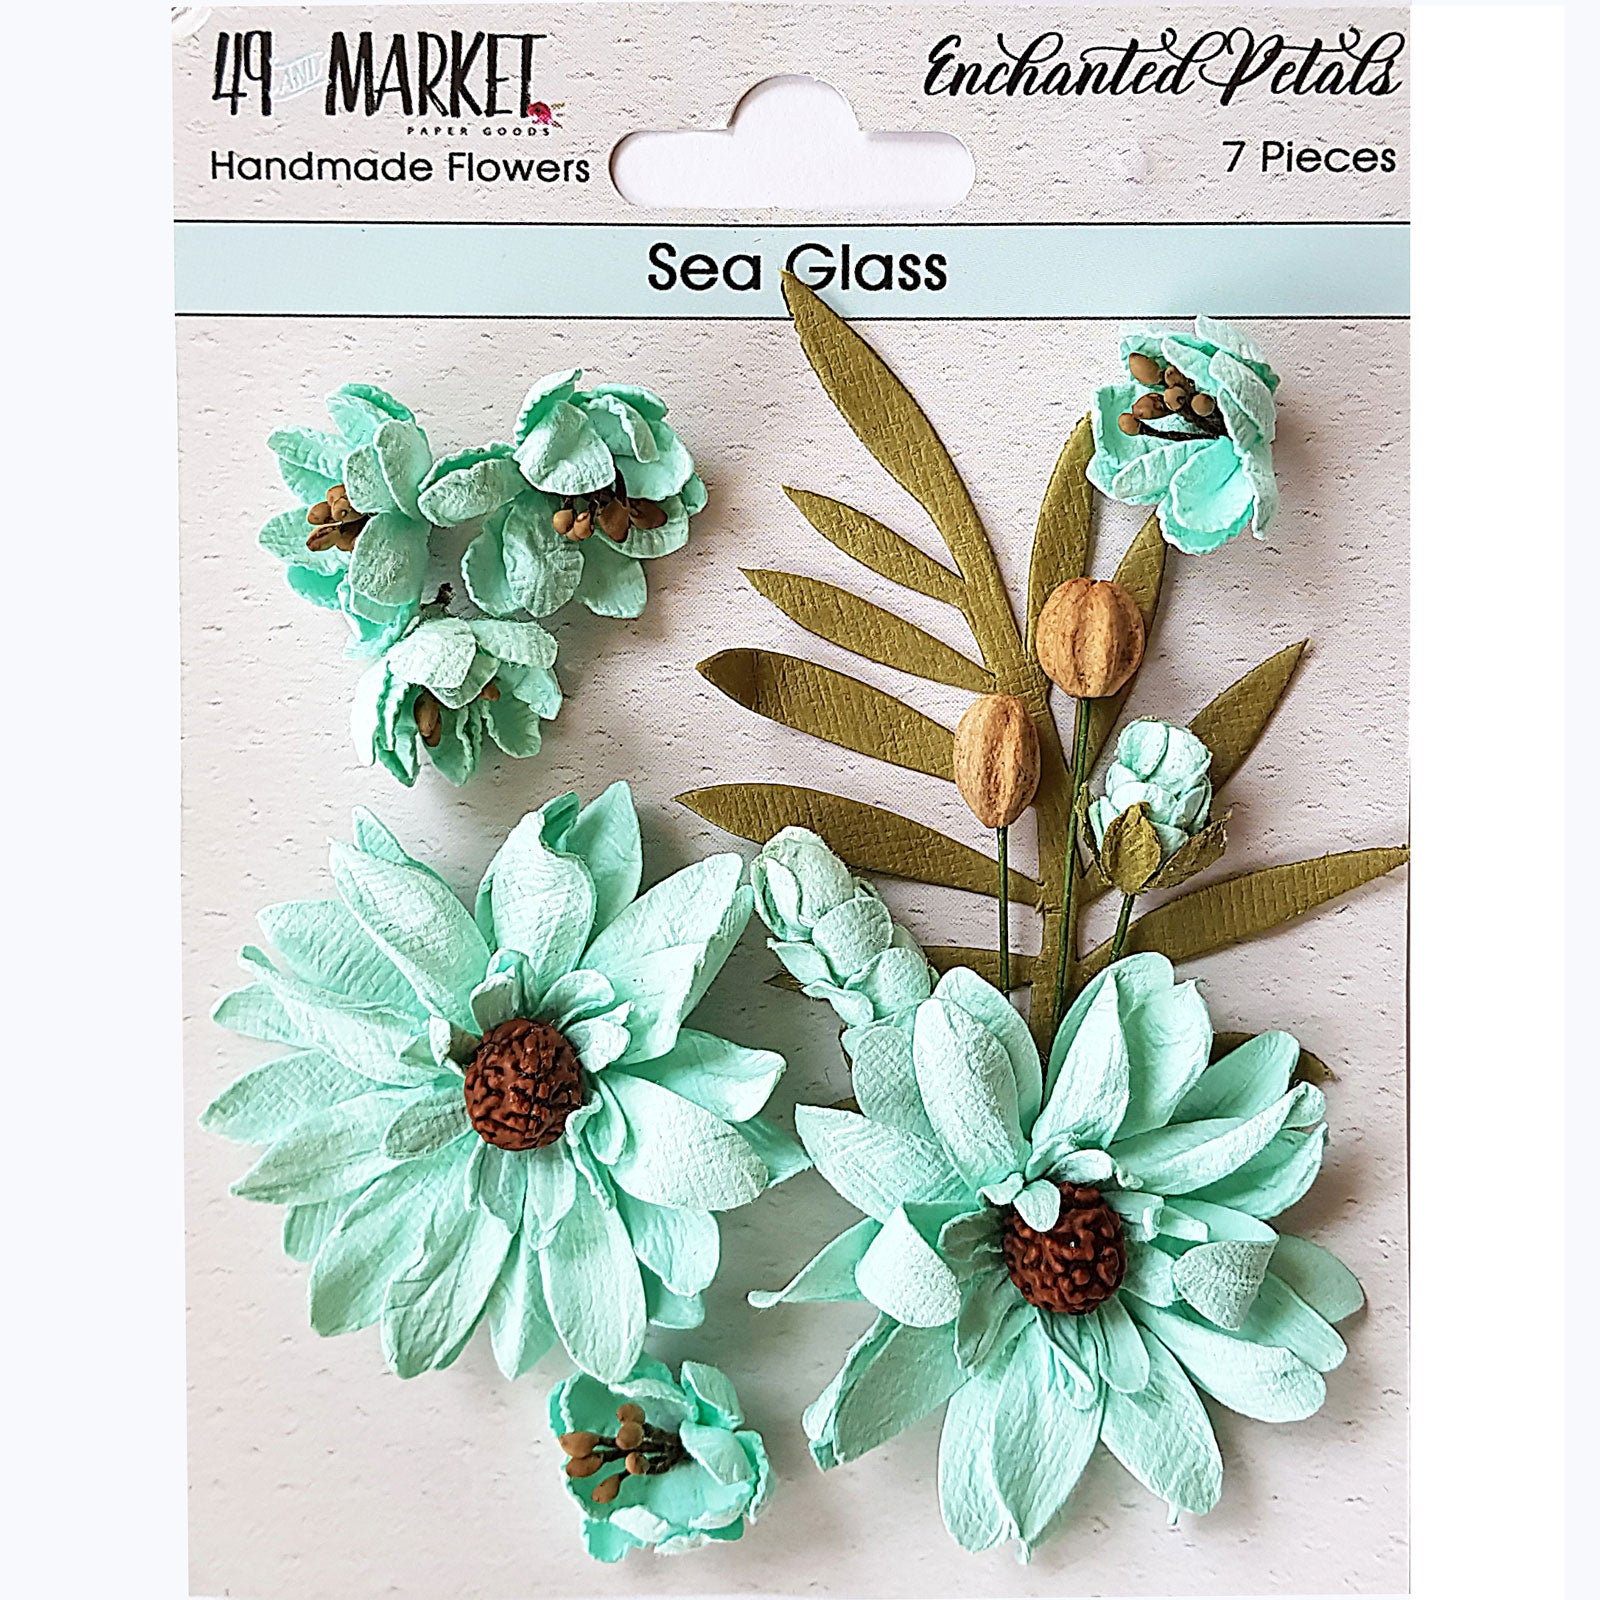 49&Market Enchanted Petals - Sea Glass